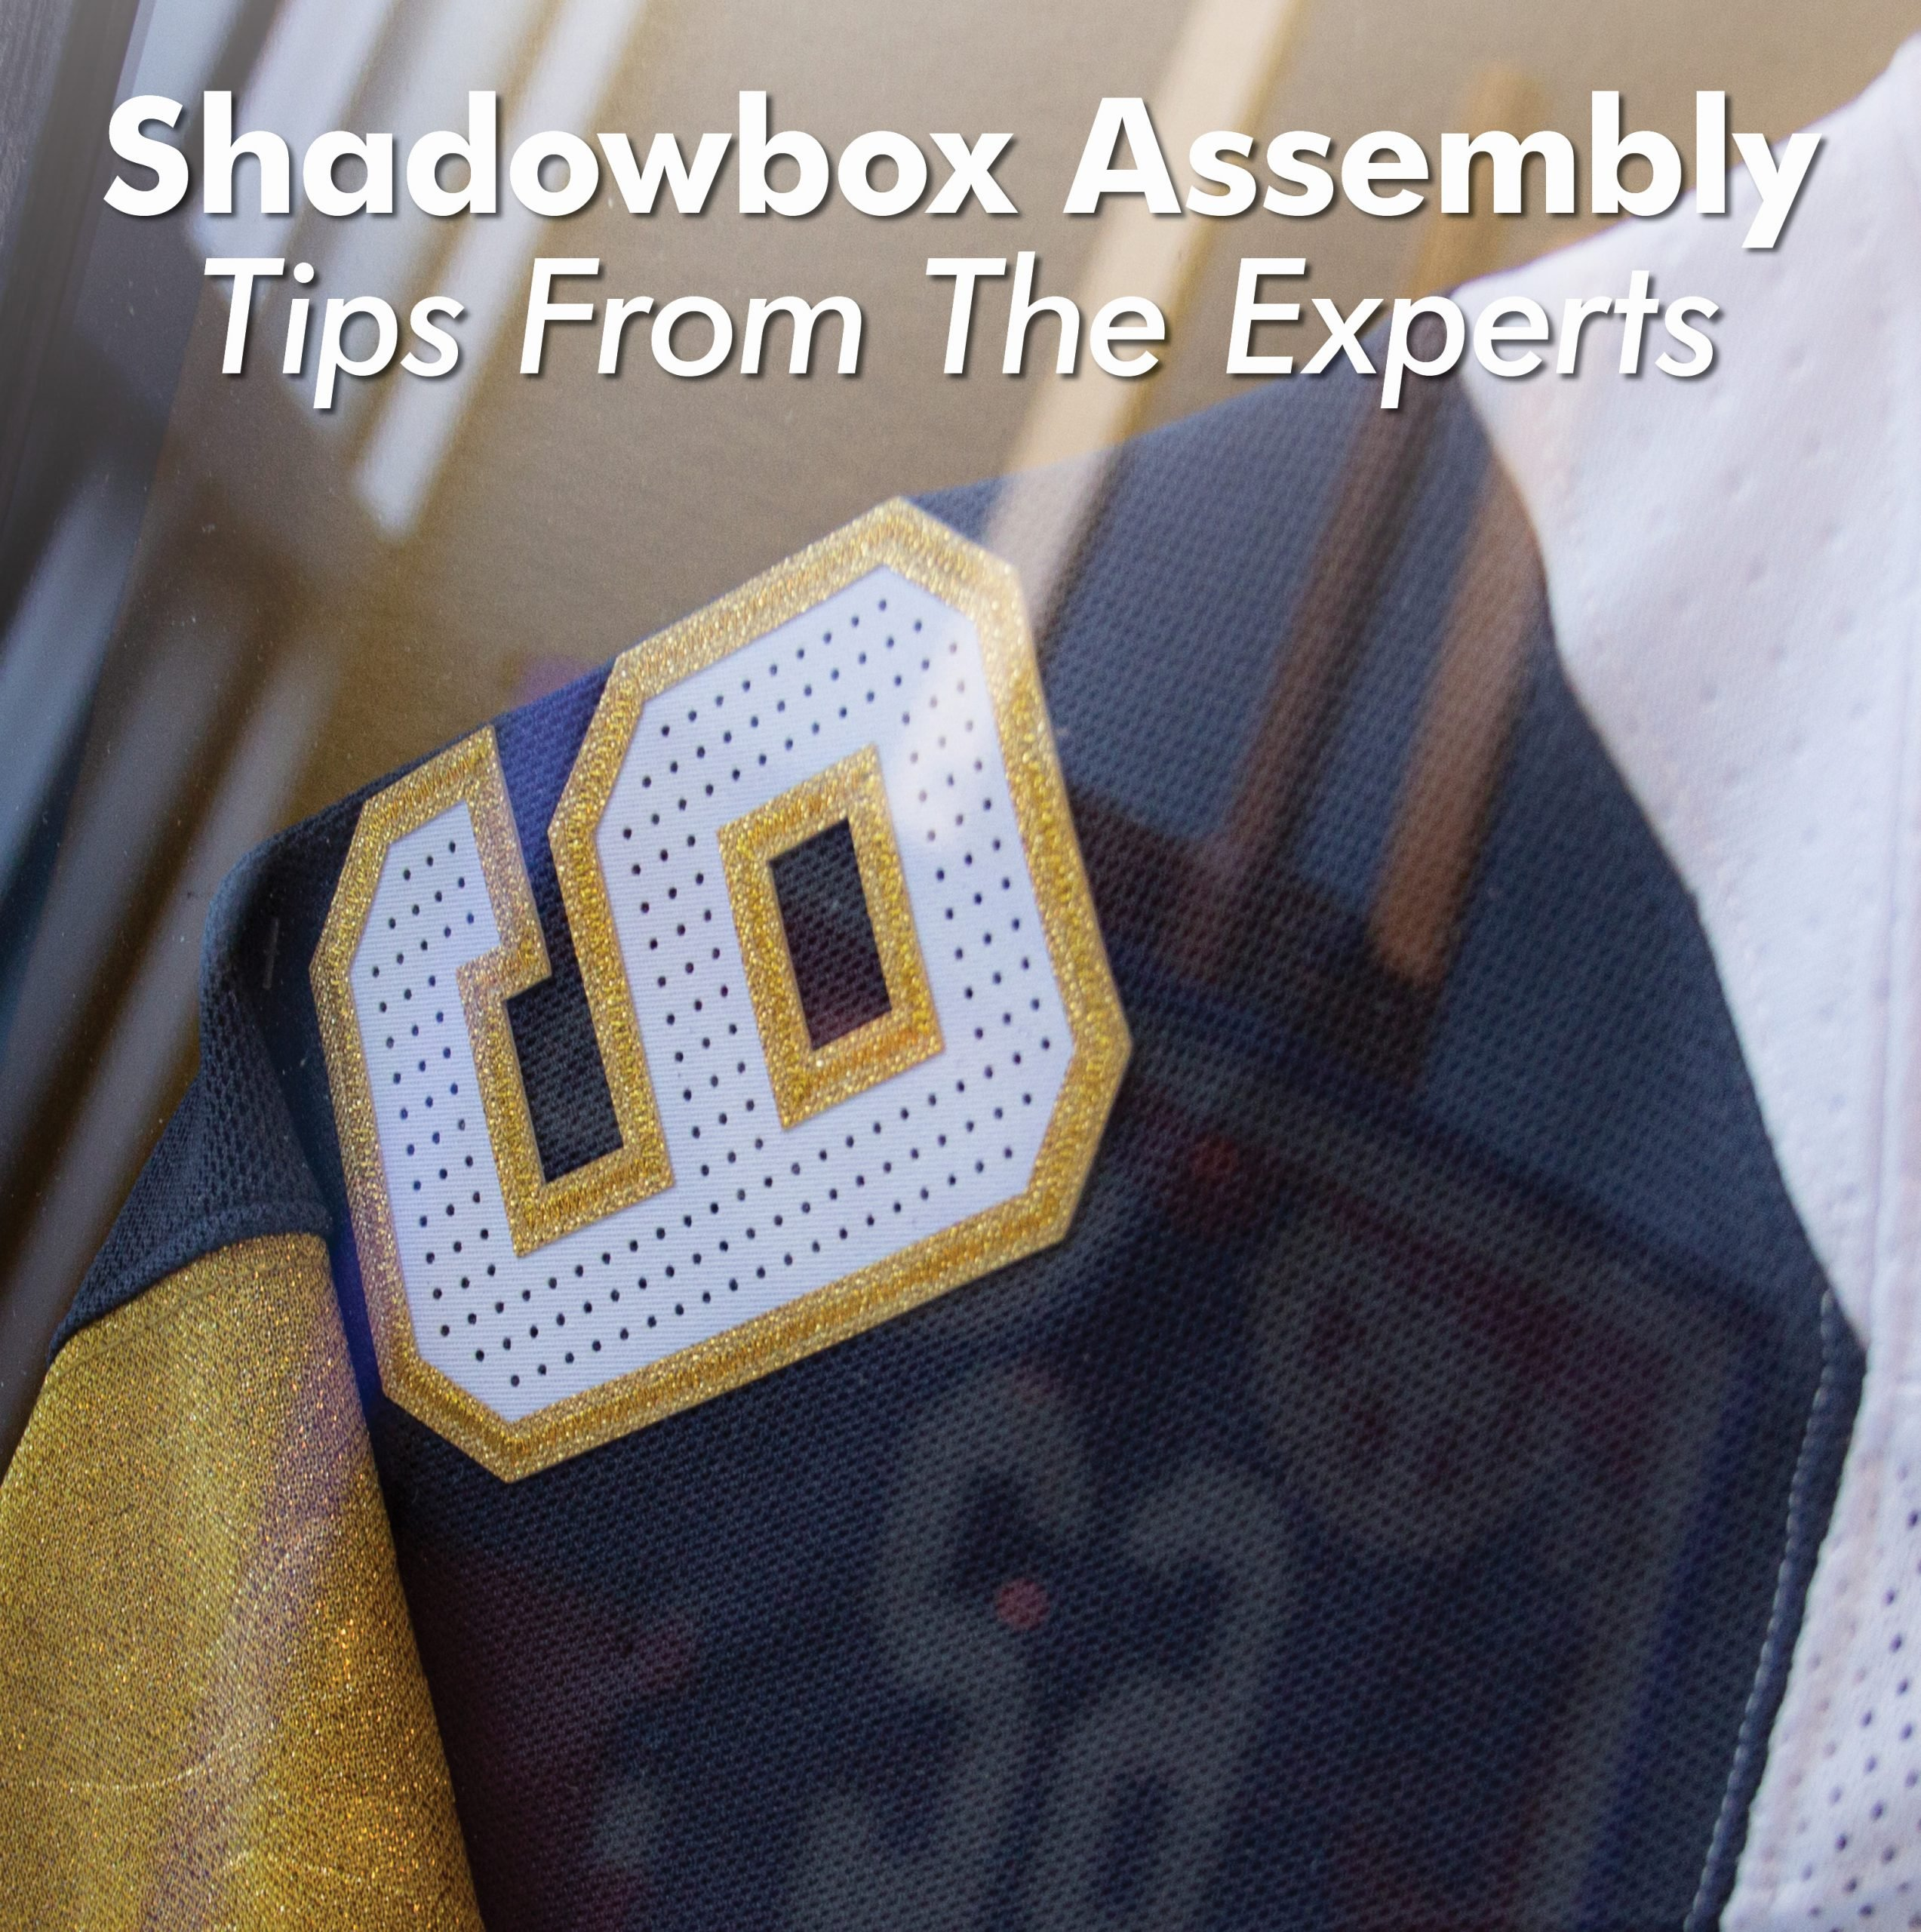 Shadowbox Assembly Tips From The Experts